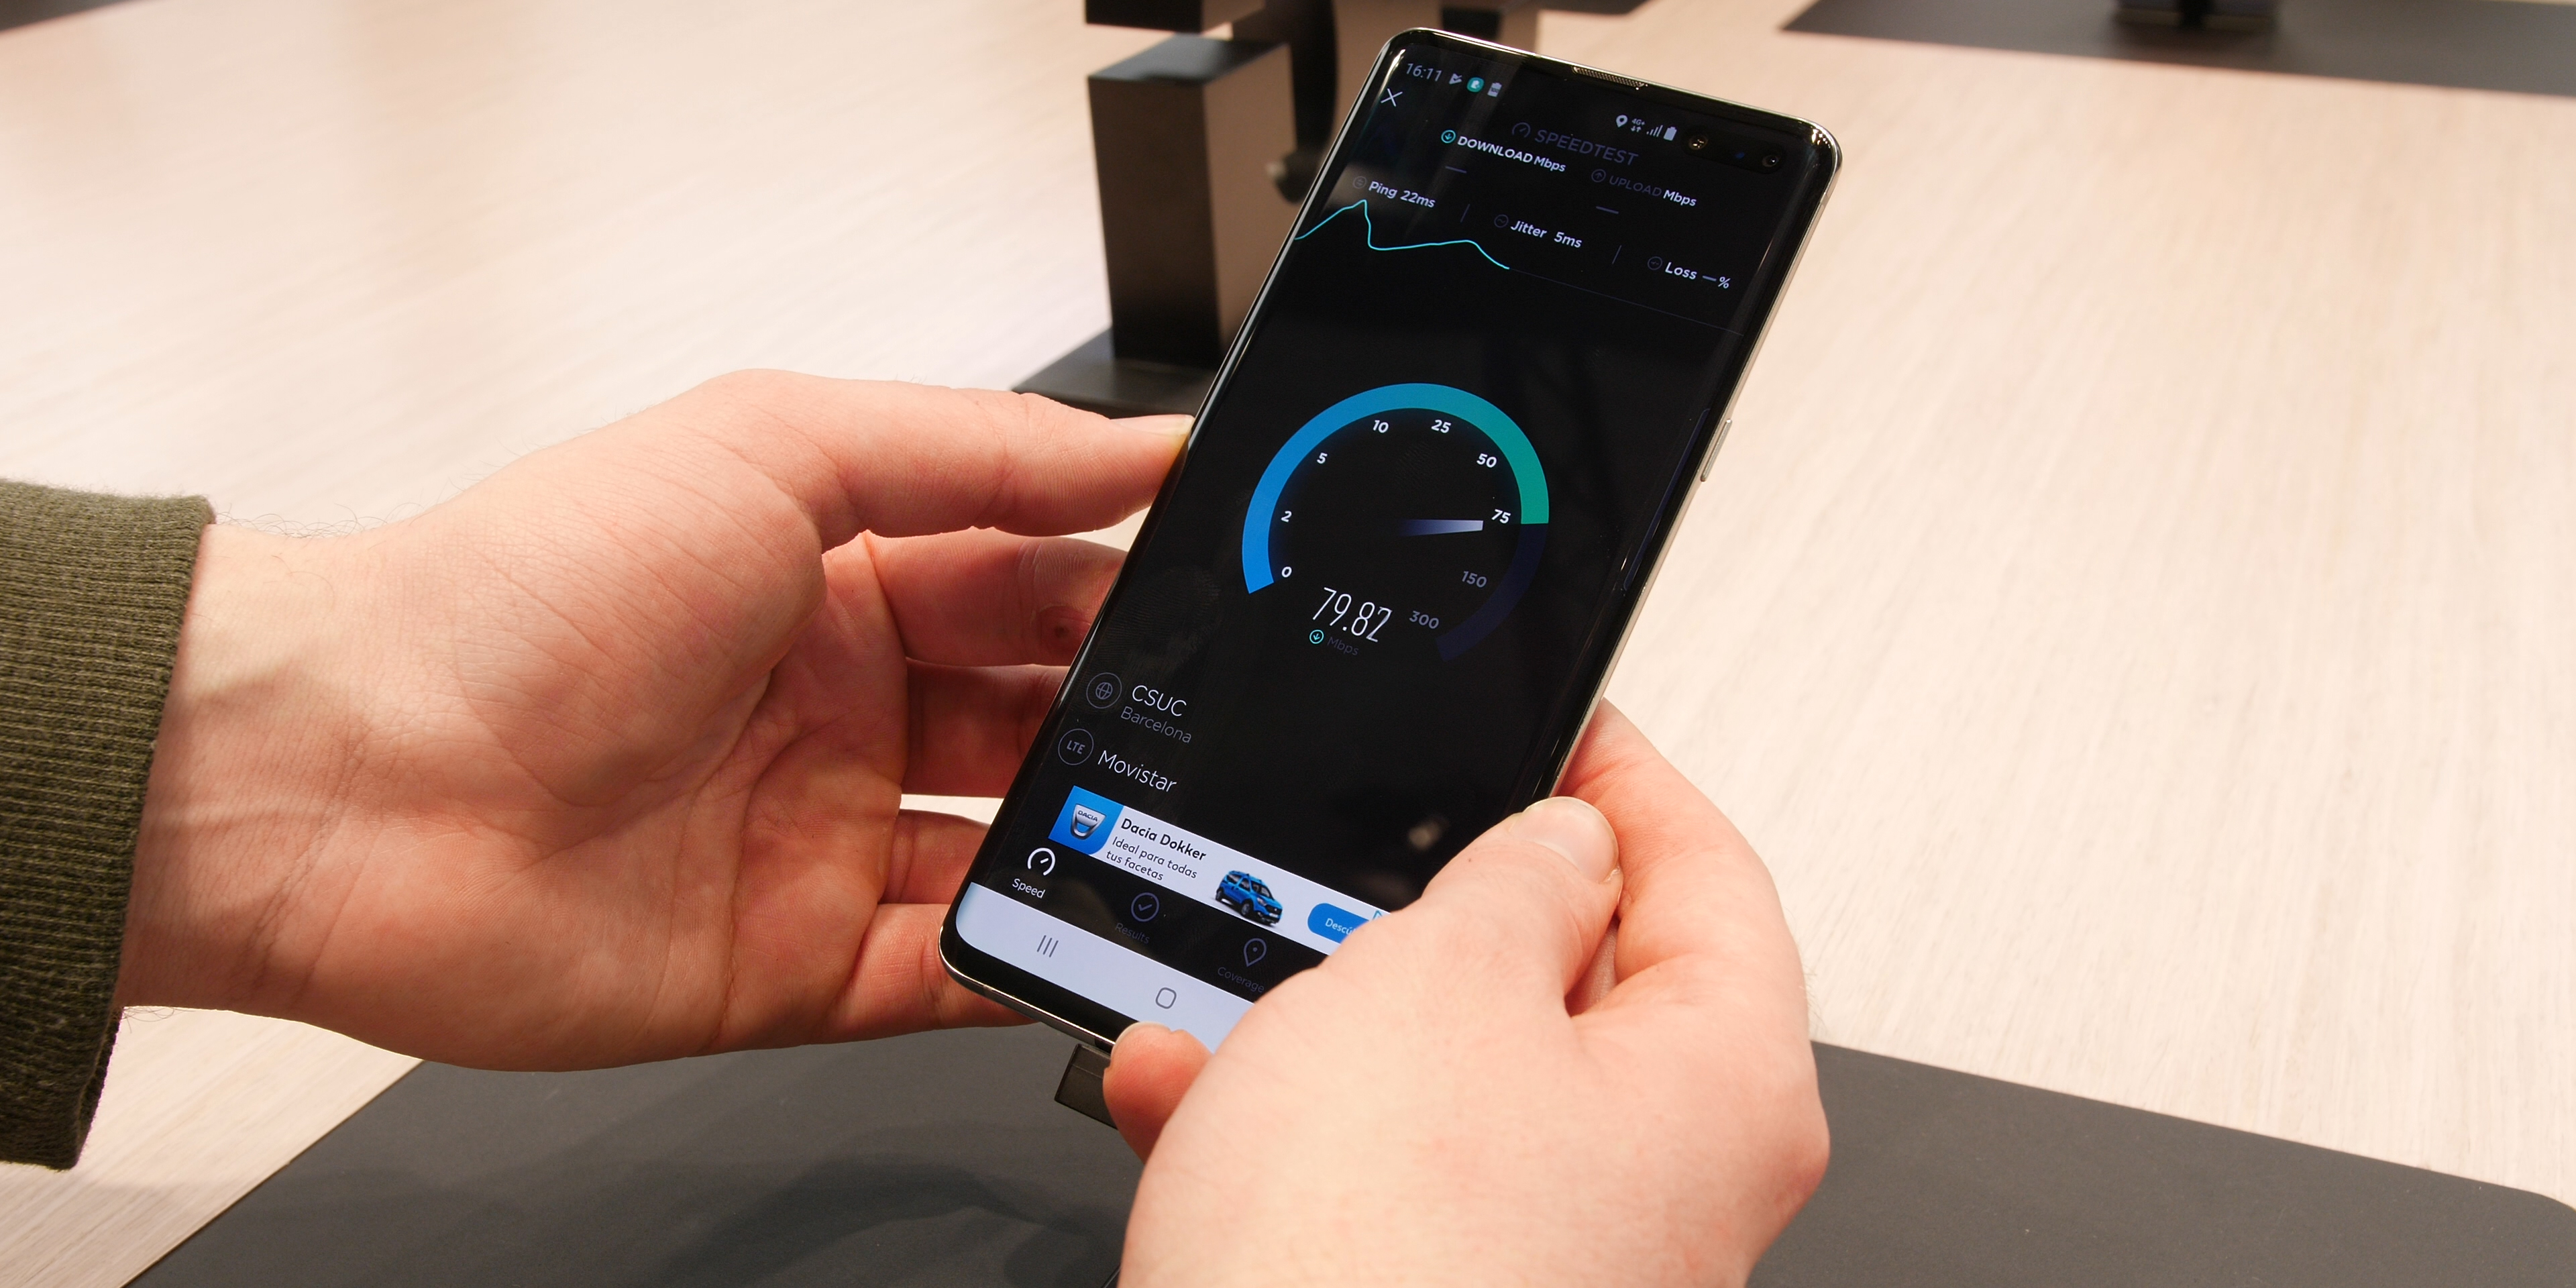 Samsung Galaxy S10 5G software and performance